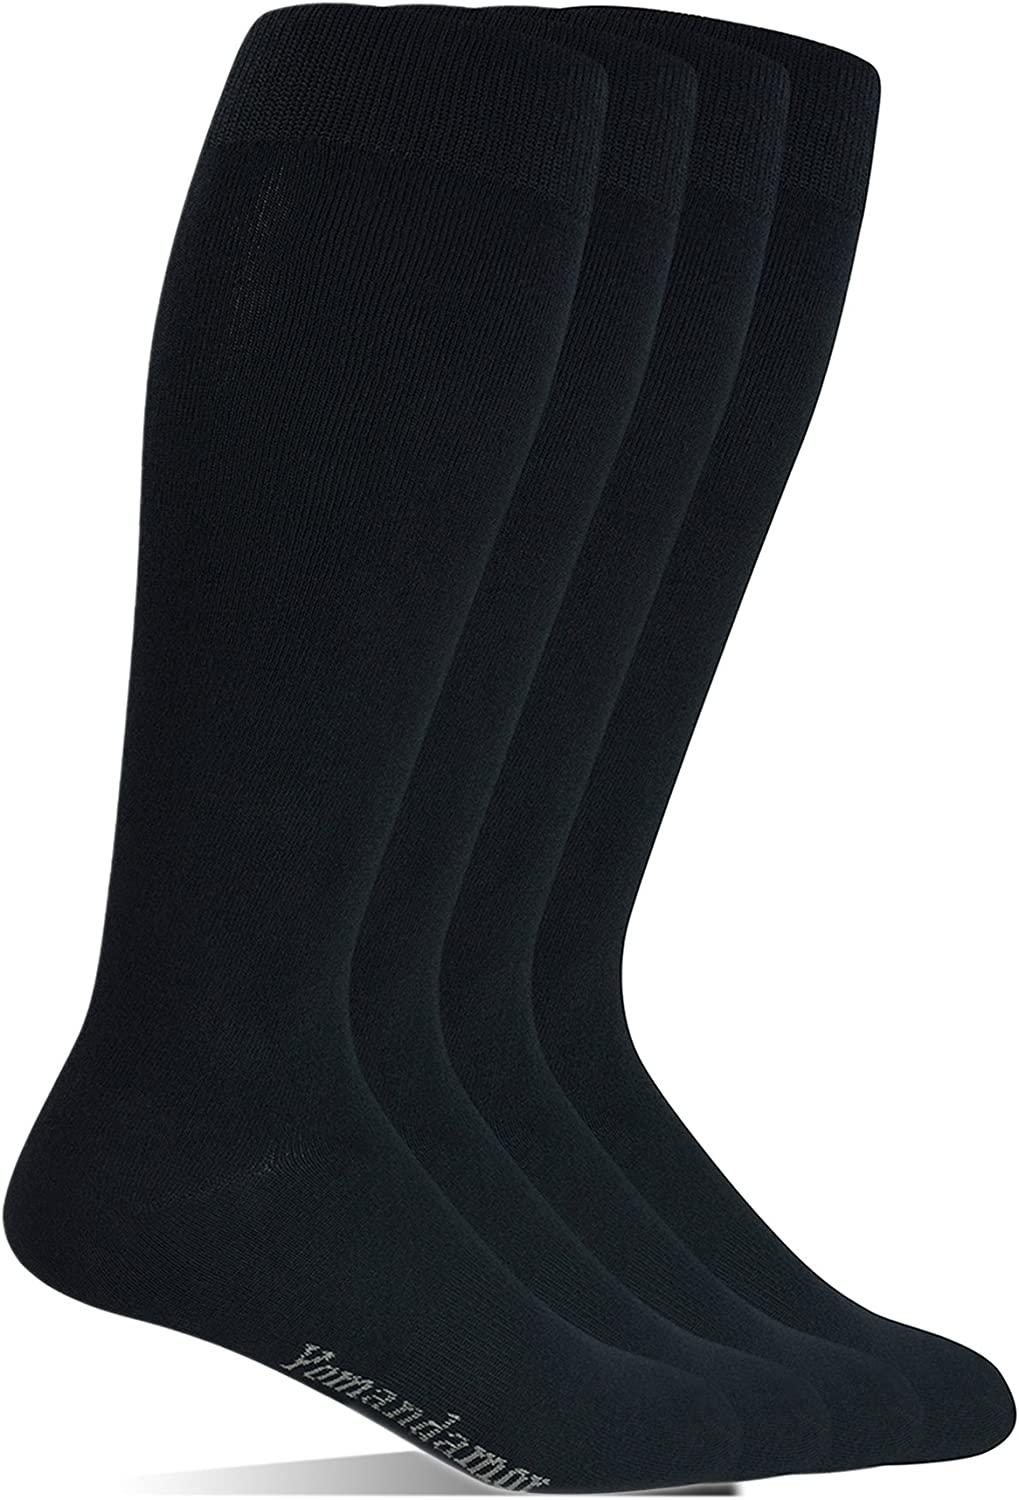 Yomandamor Men's Bamboo Wide Stretched Top Over The Calf Dress Socks Boot Socks, 4 Pairs L Size, Suits For All Season